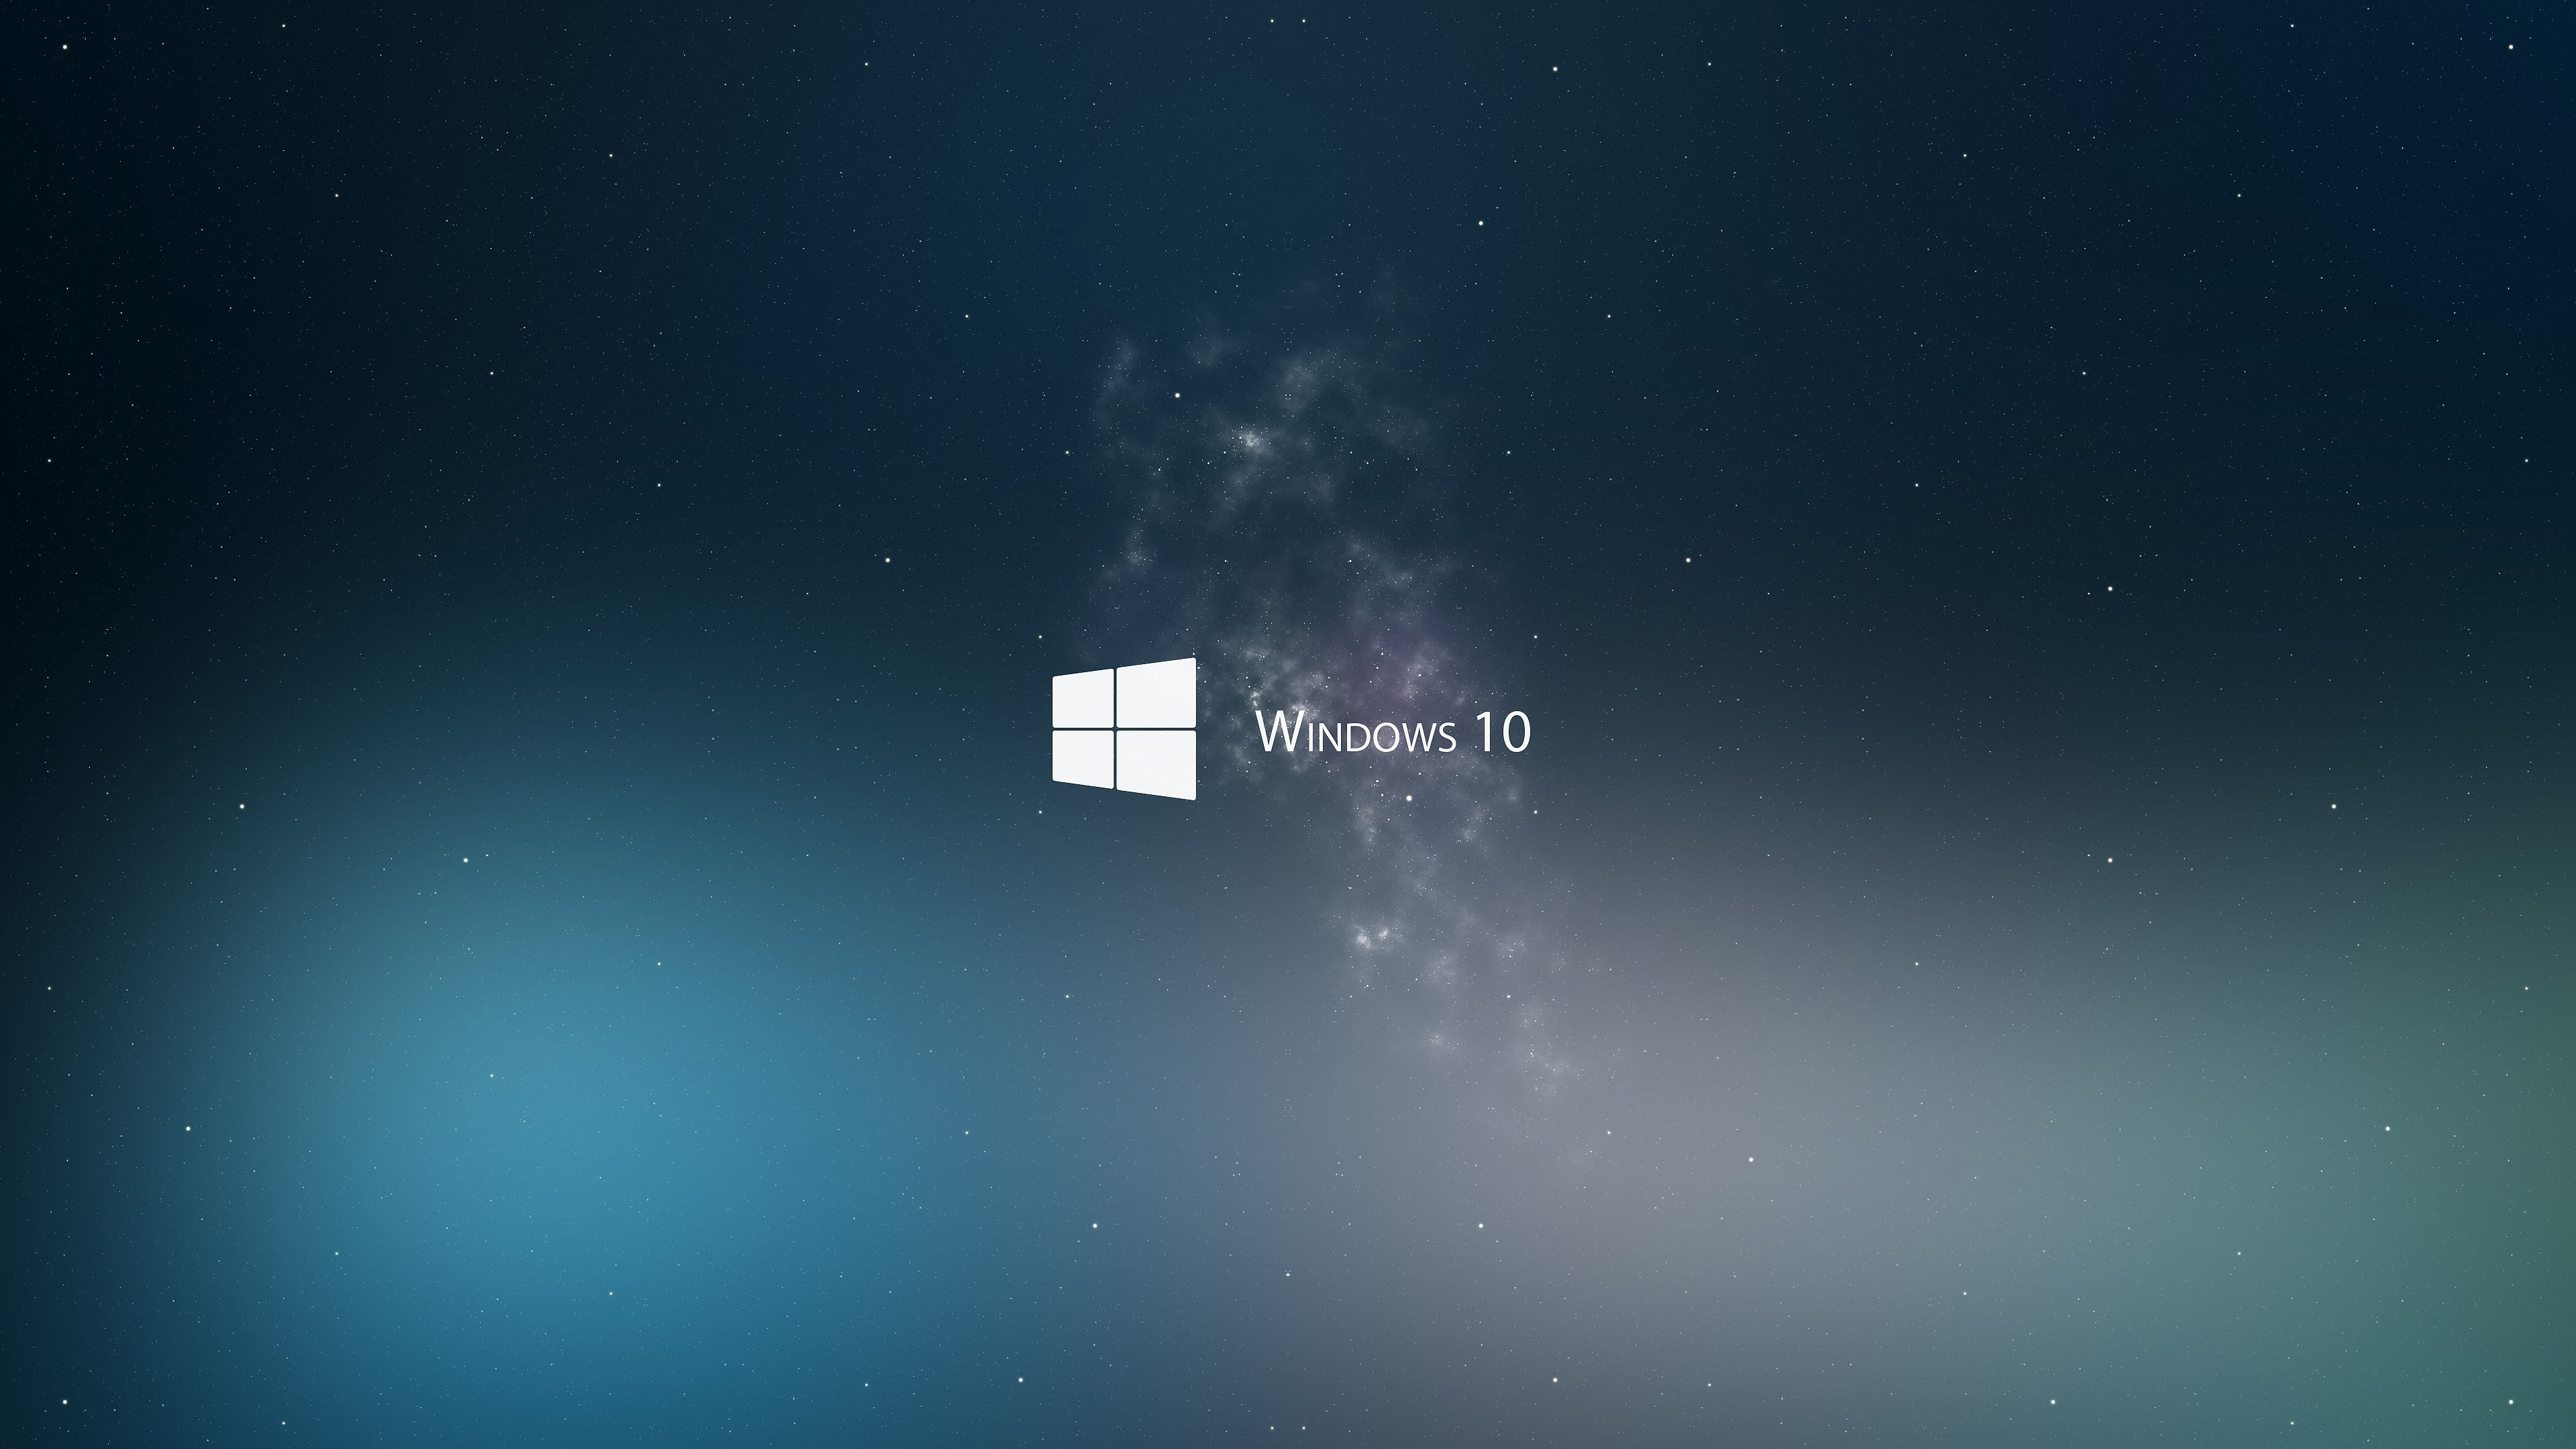 Windows 10 Wallpapers 21